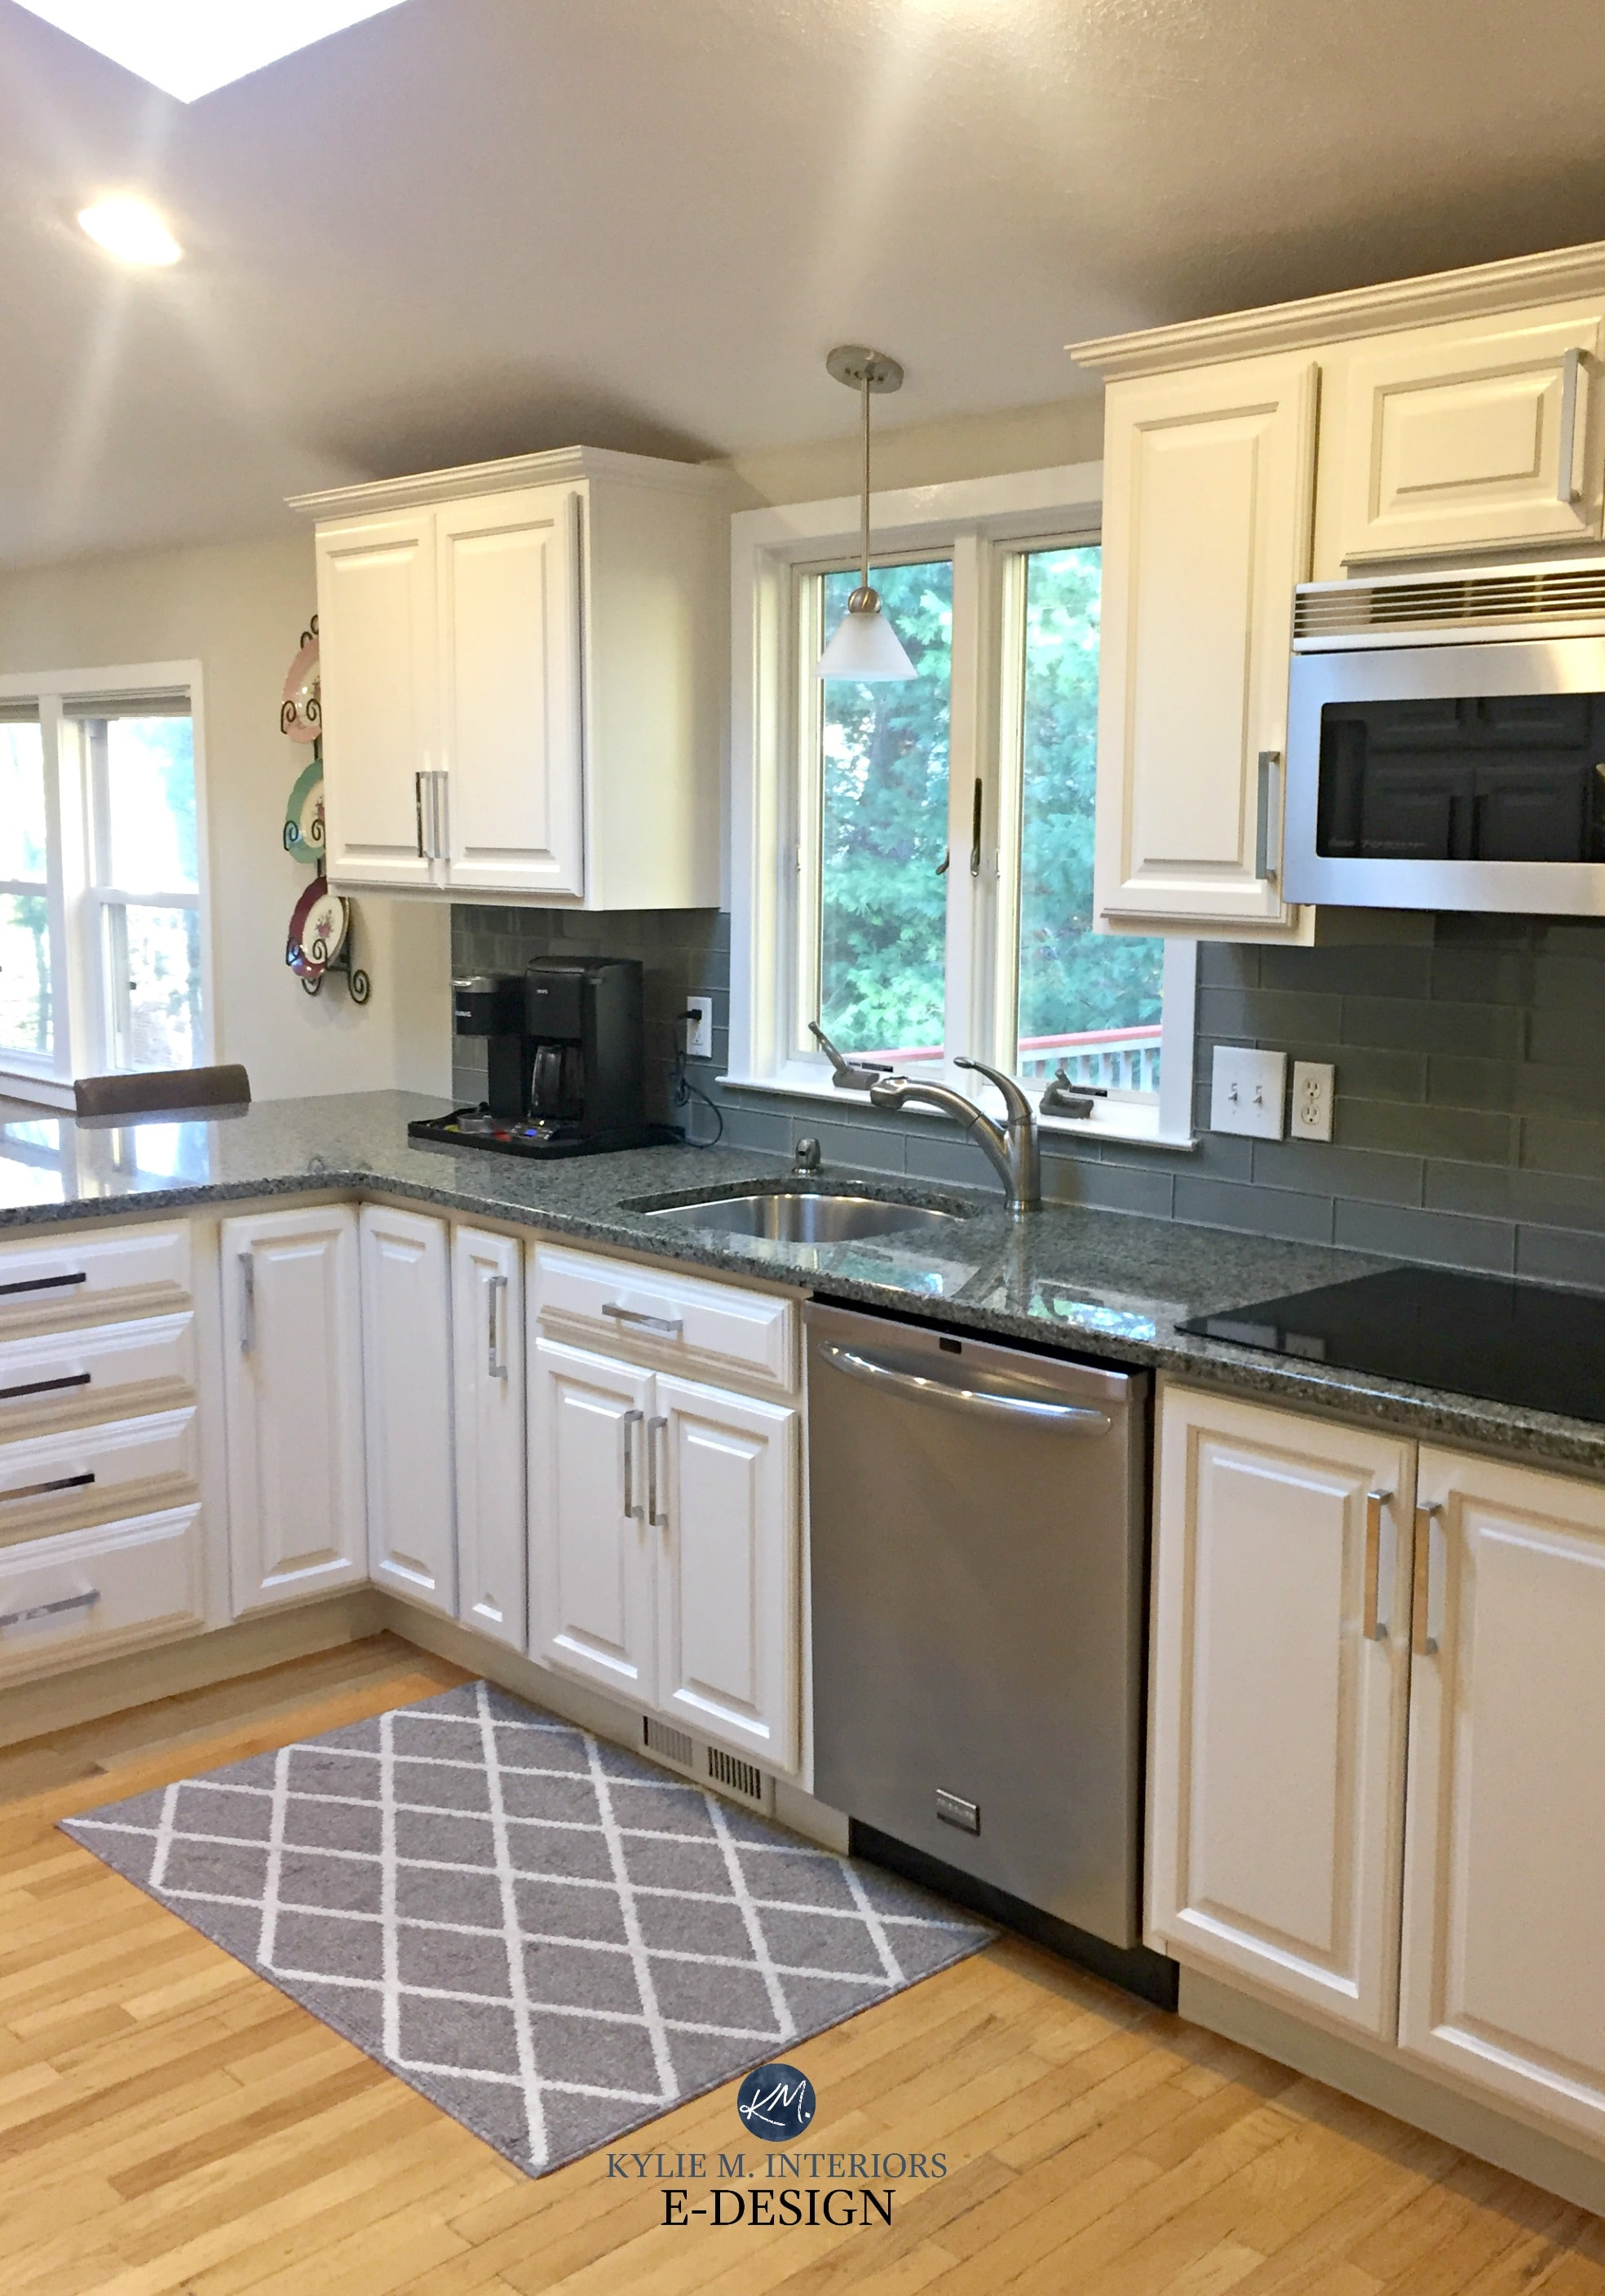 Sherwin Williams White Duck painted maple cabinets and ... on Maple Cabinets With Backsplash  id=73116